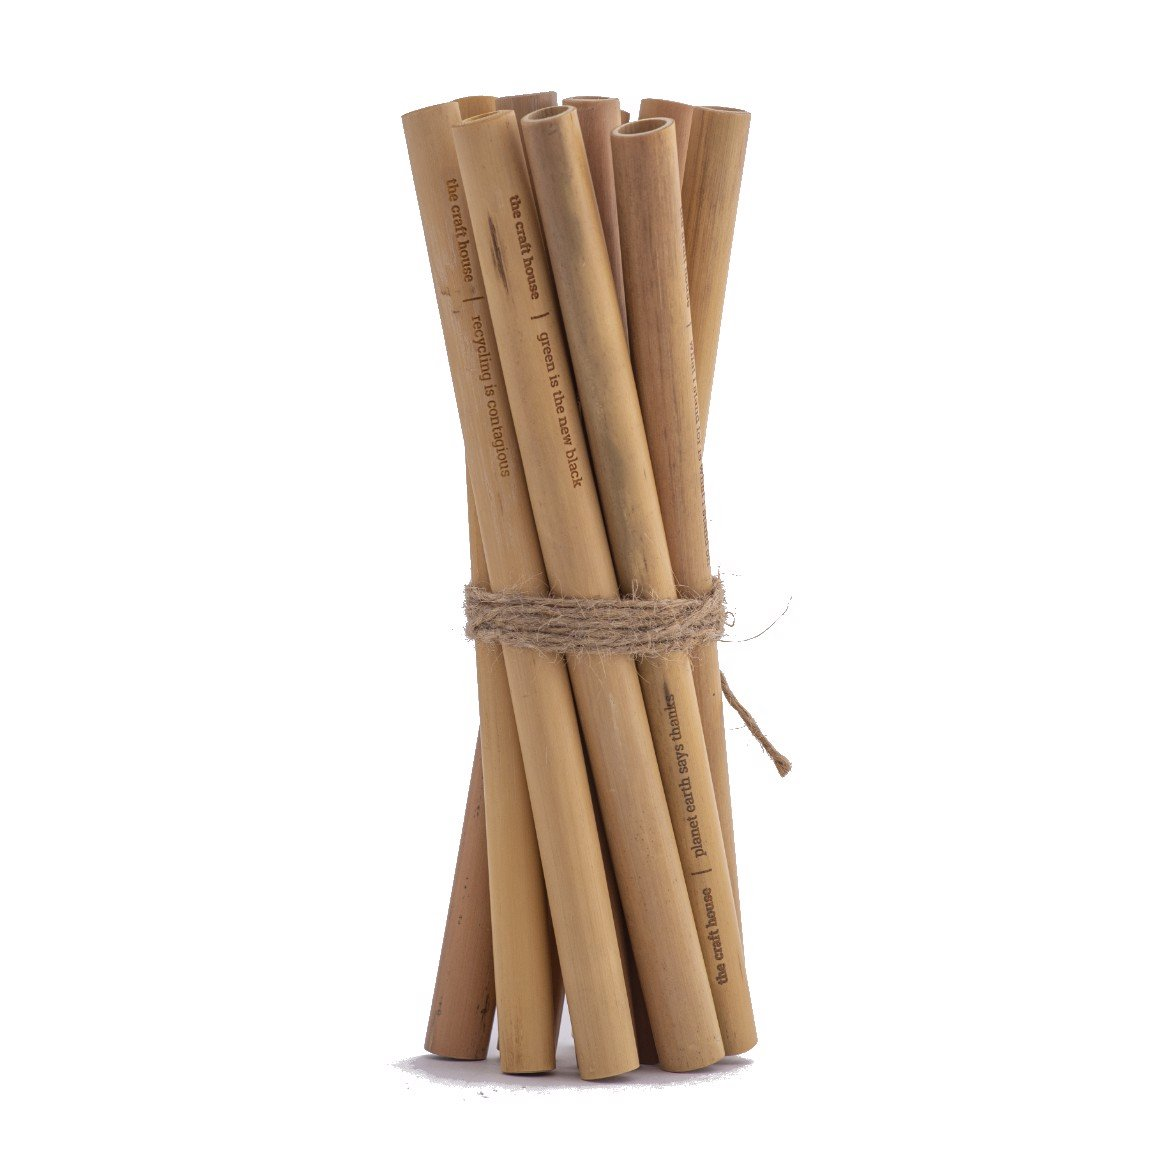 Ống Hút Tre Set Nhỏ - Bamboo Straw Small Set